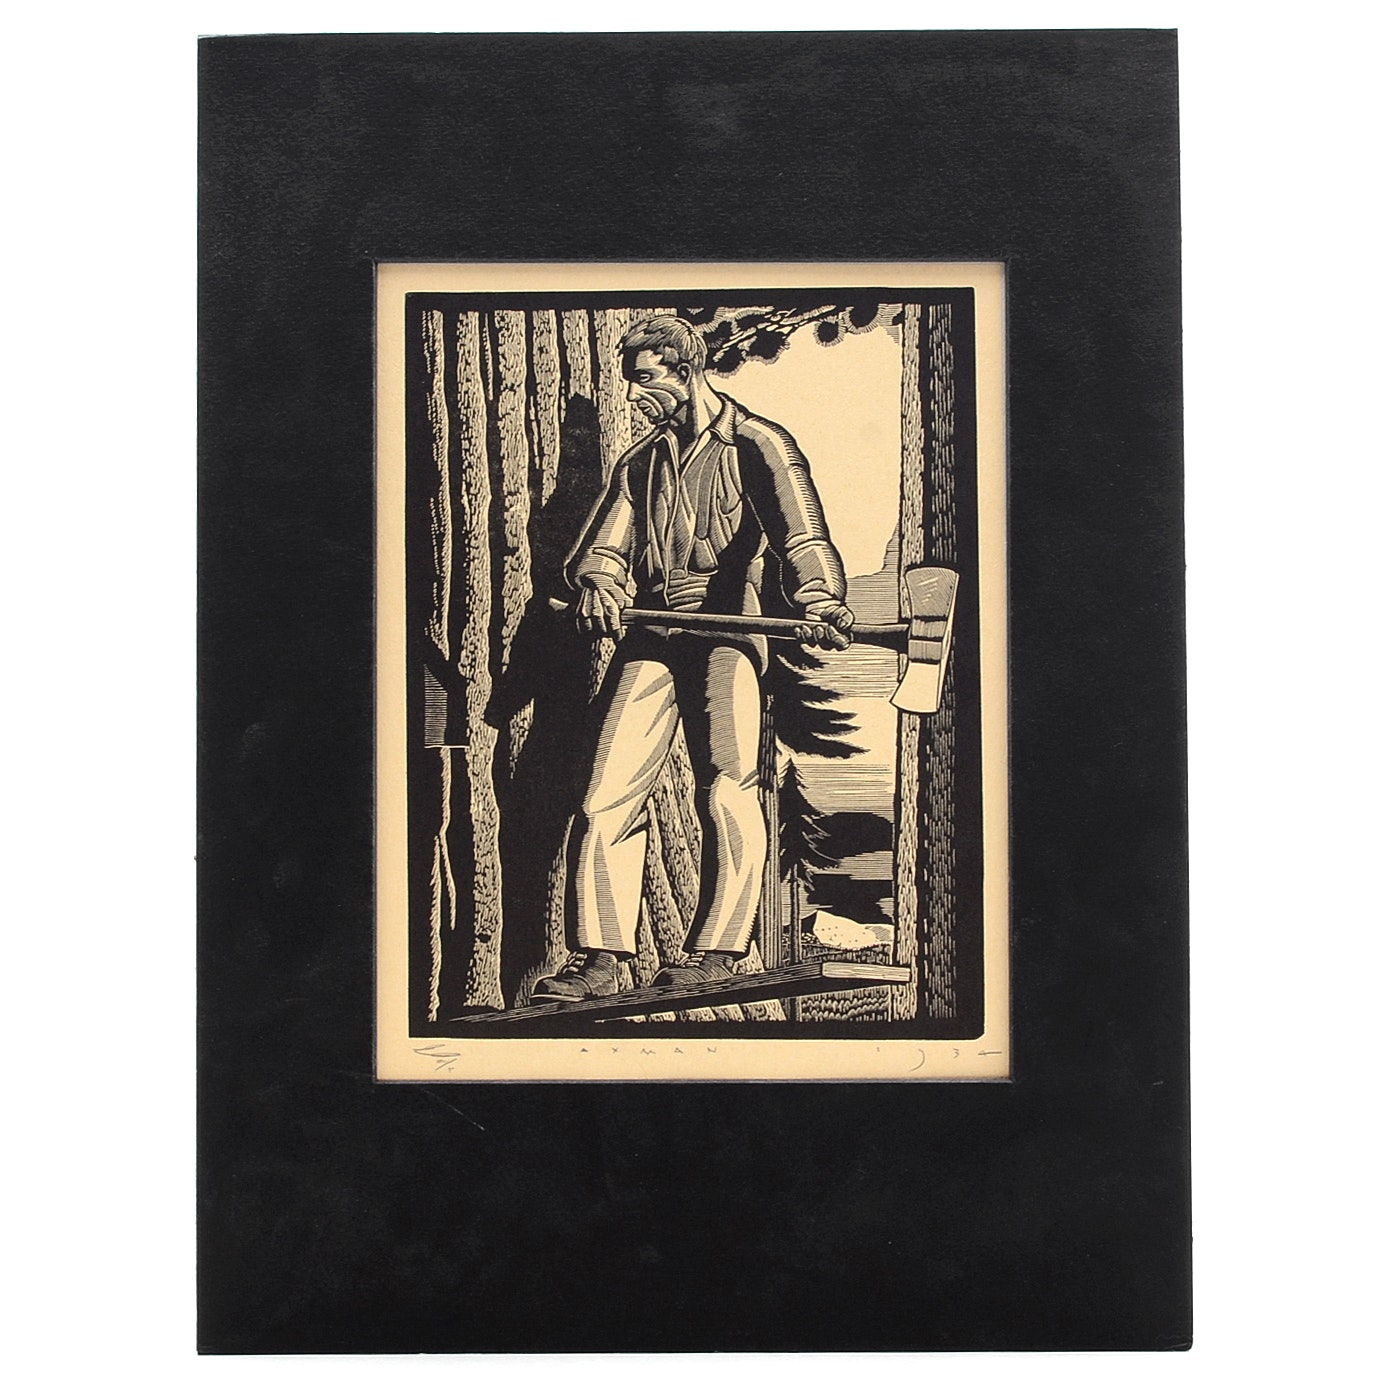 E. M. Washington Woodblock on Paper after Rockwell Kent